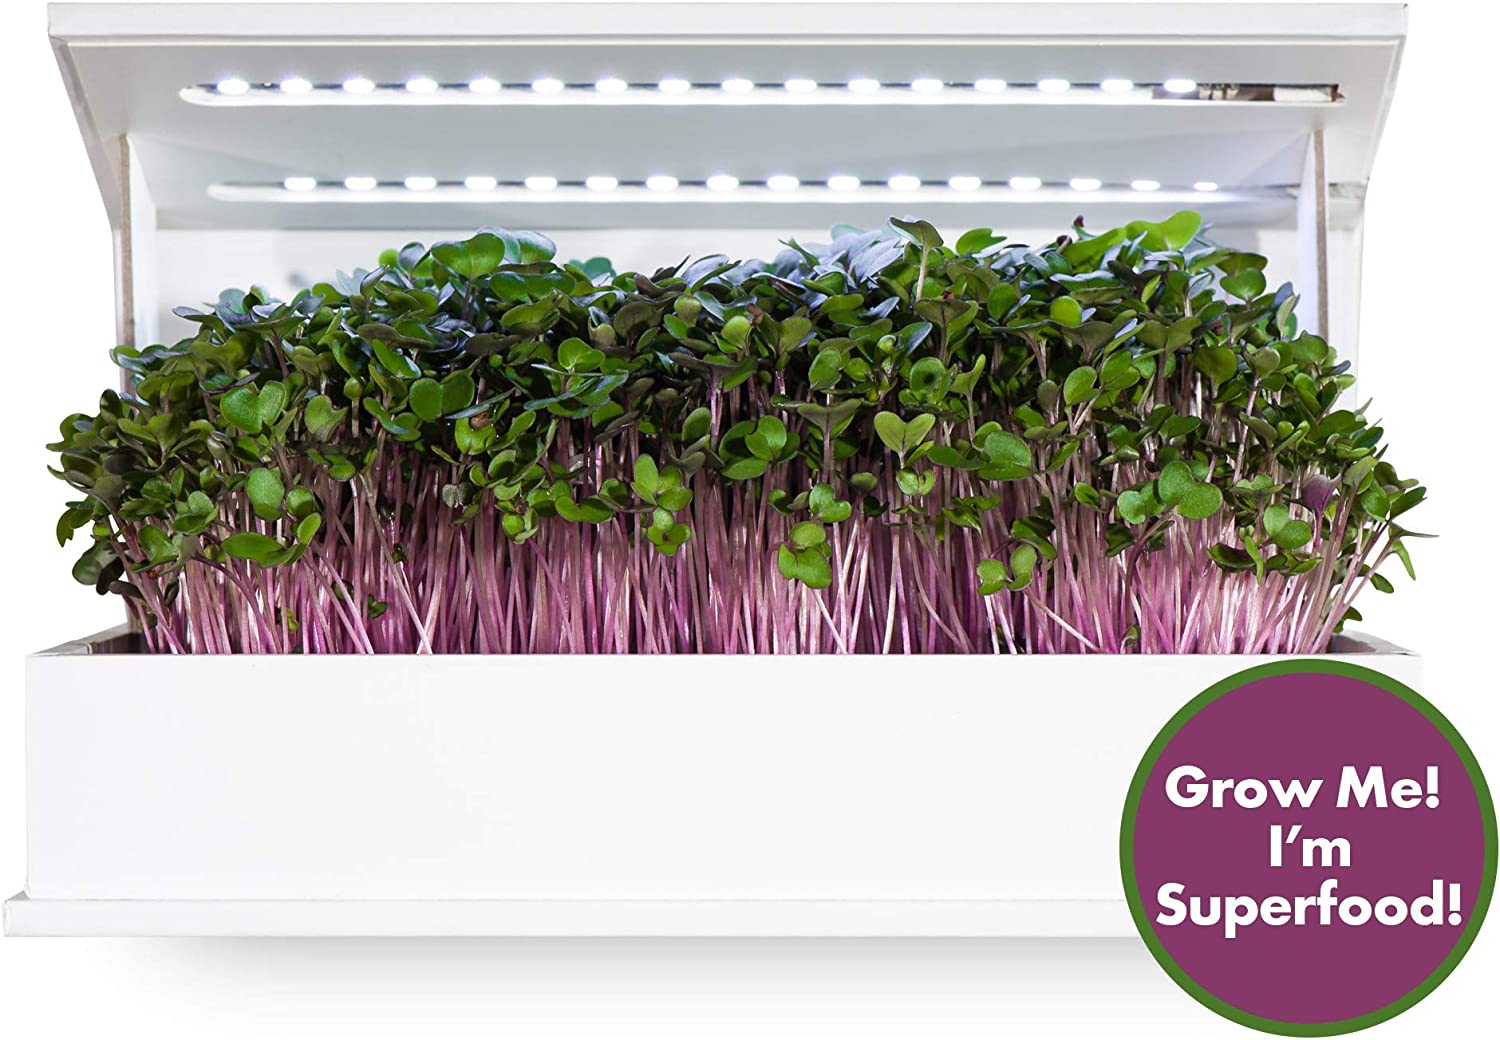 Grow Book Countertop Microgreens Garden - Cruciferous Edition - Indoor Gardening Solution - Includes Seeds, Soil & LED Lights - Grows in About 10 Days - Organic & Non-GMO